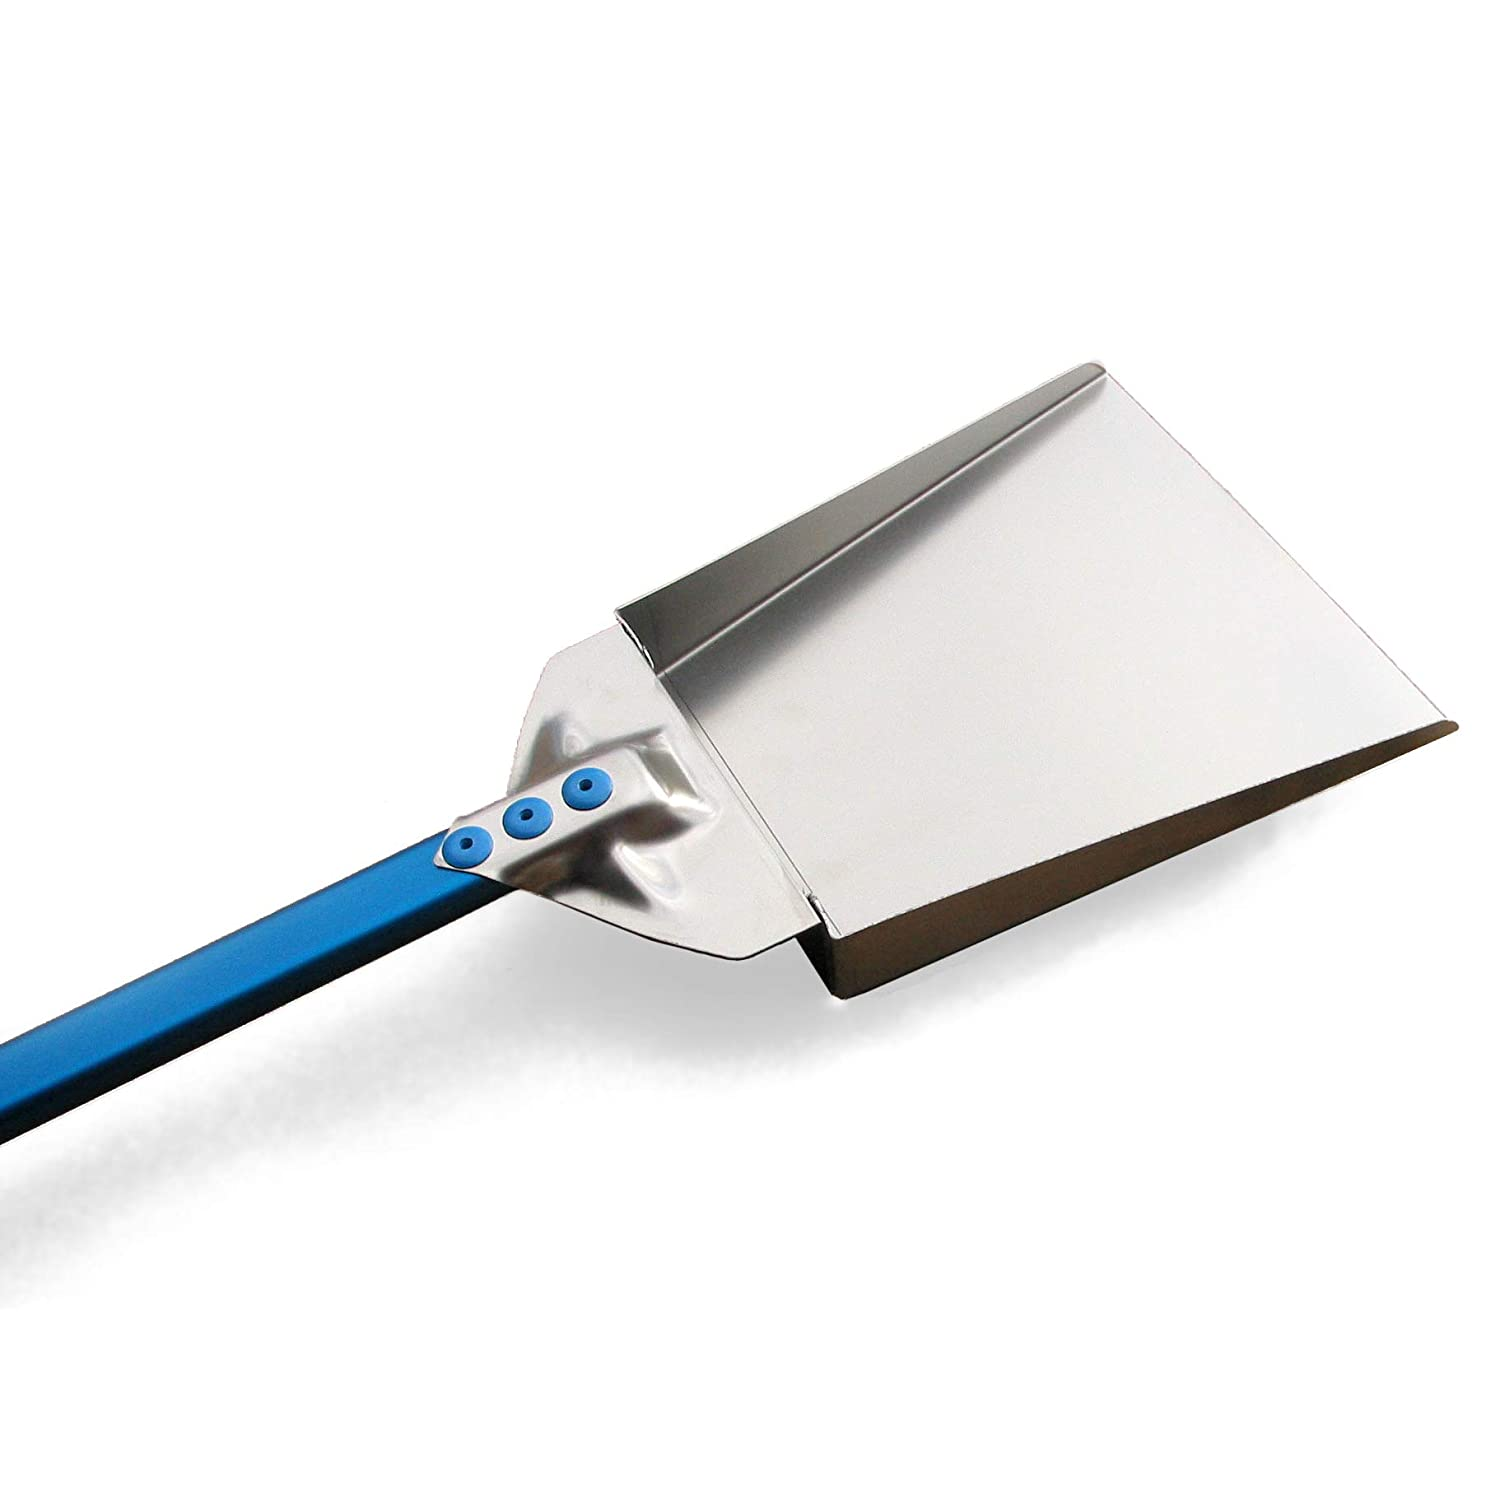 Ash Shovel - Stainless Steel with Aluminum Handle - 47-inch Handle